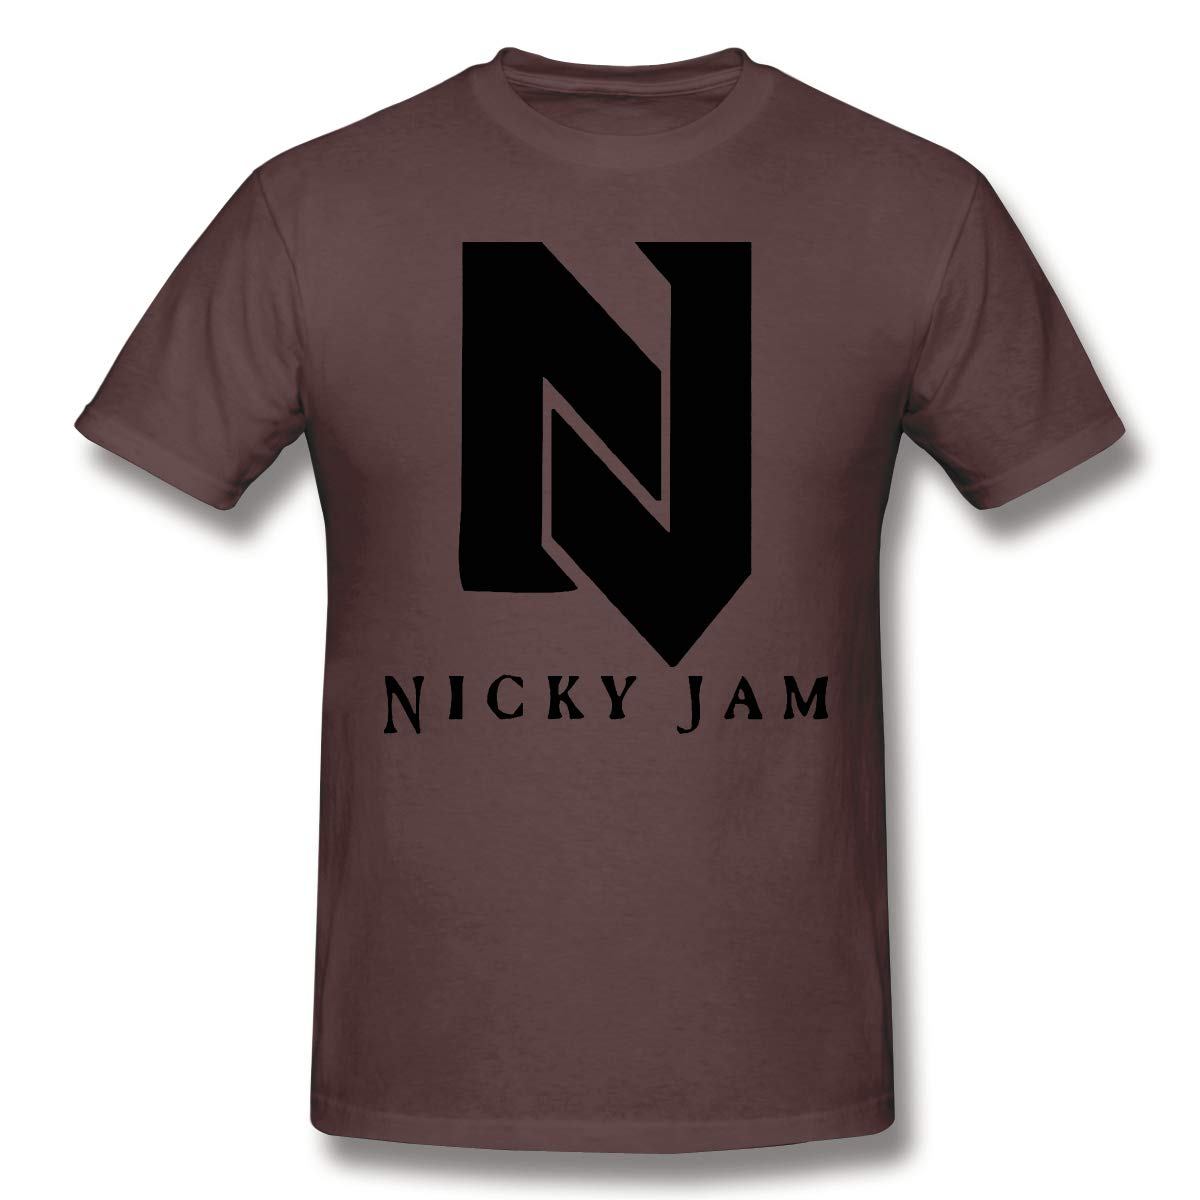 S Short Sleeve Tshirt Original American Leisure Nicky Jam Logo Coffee